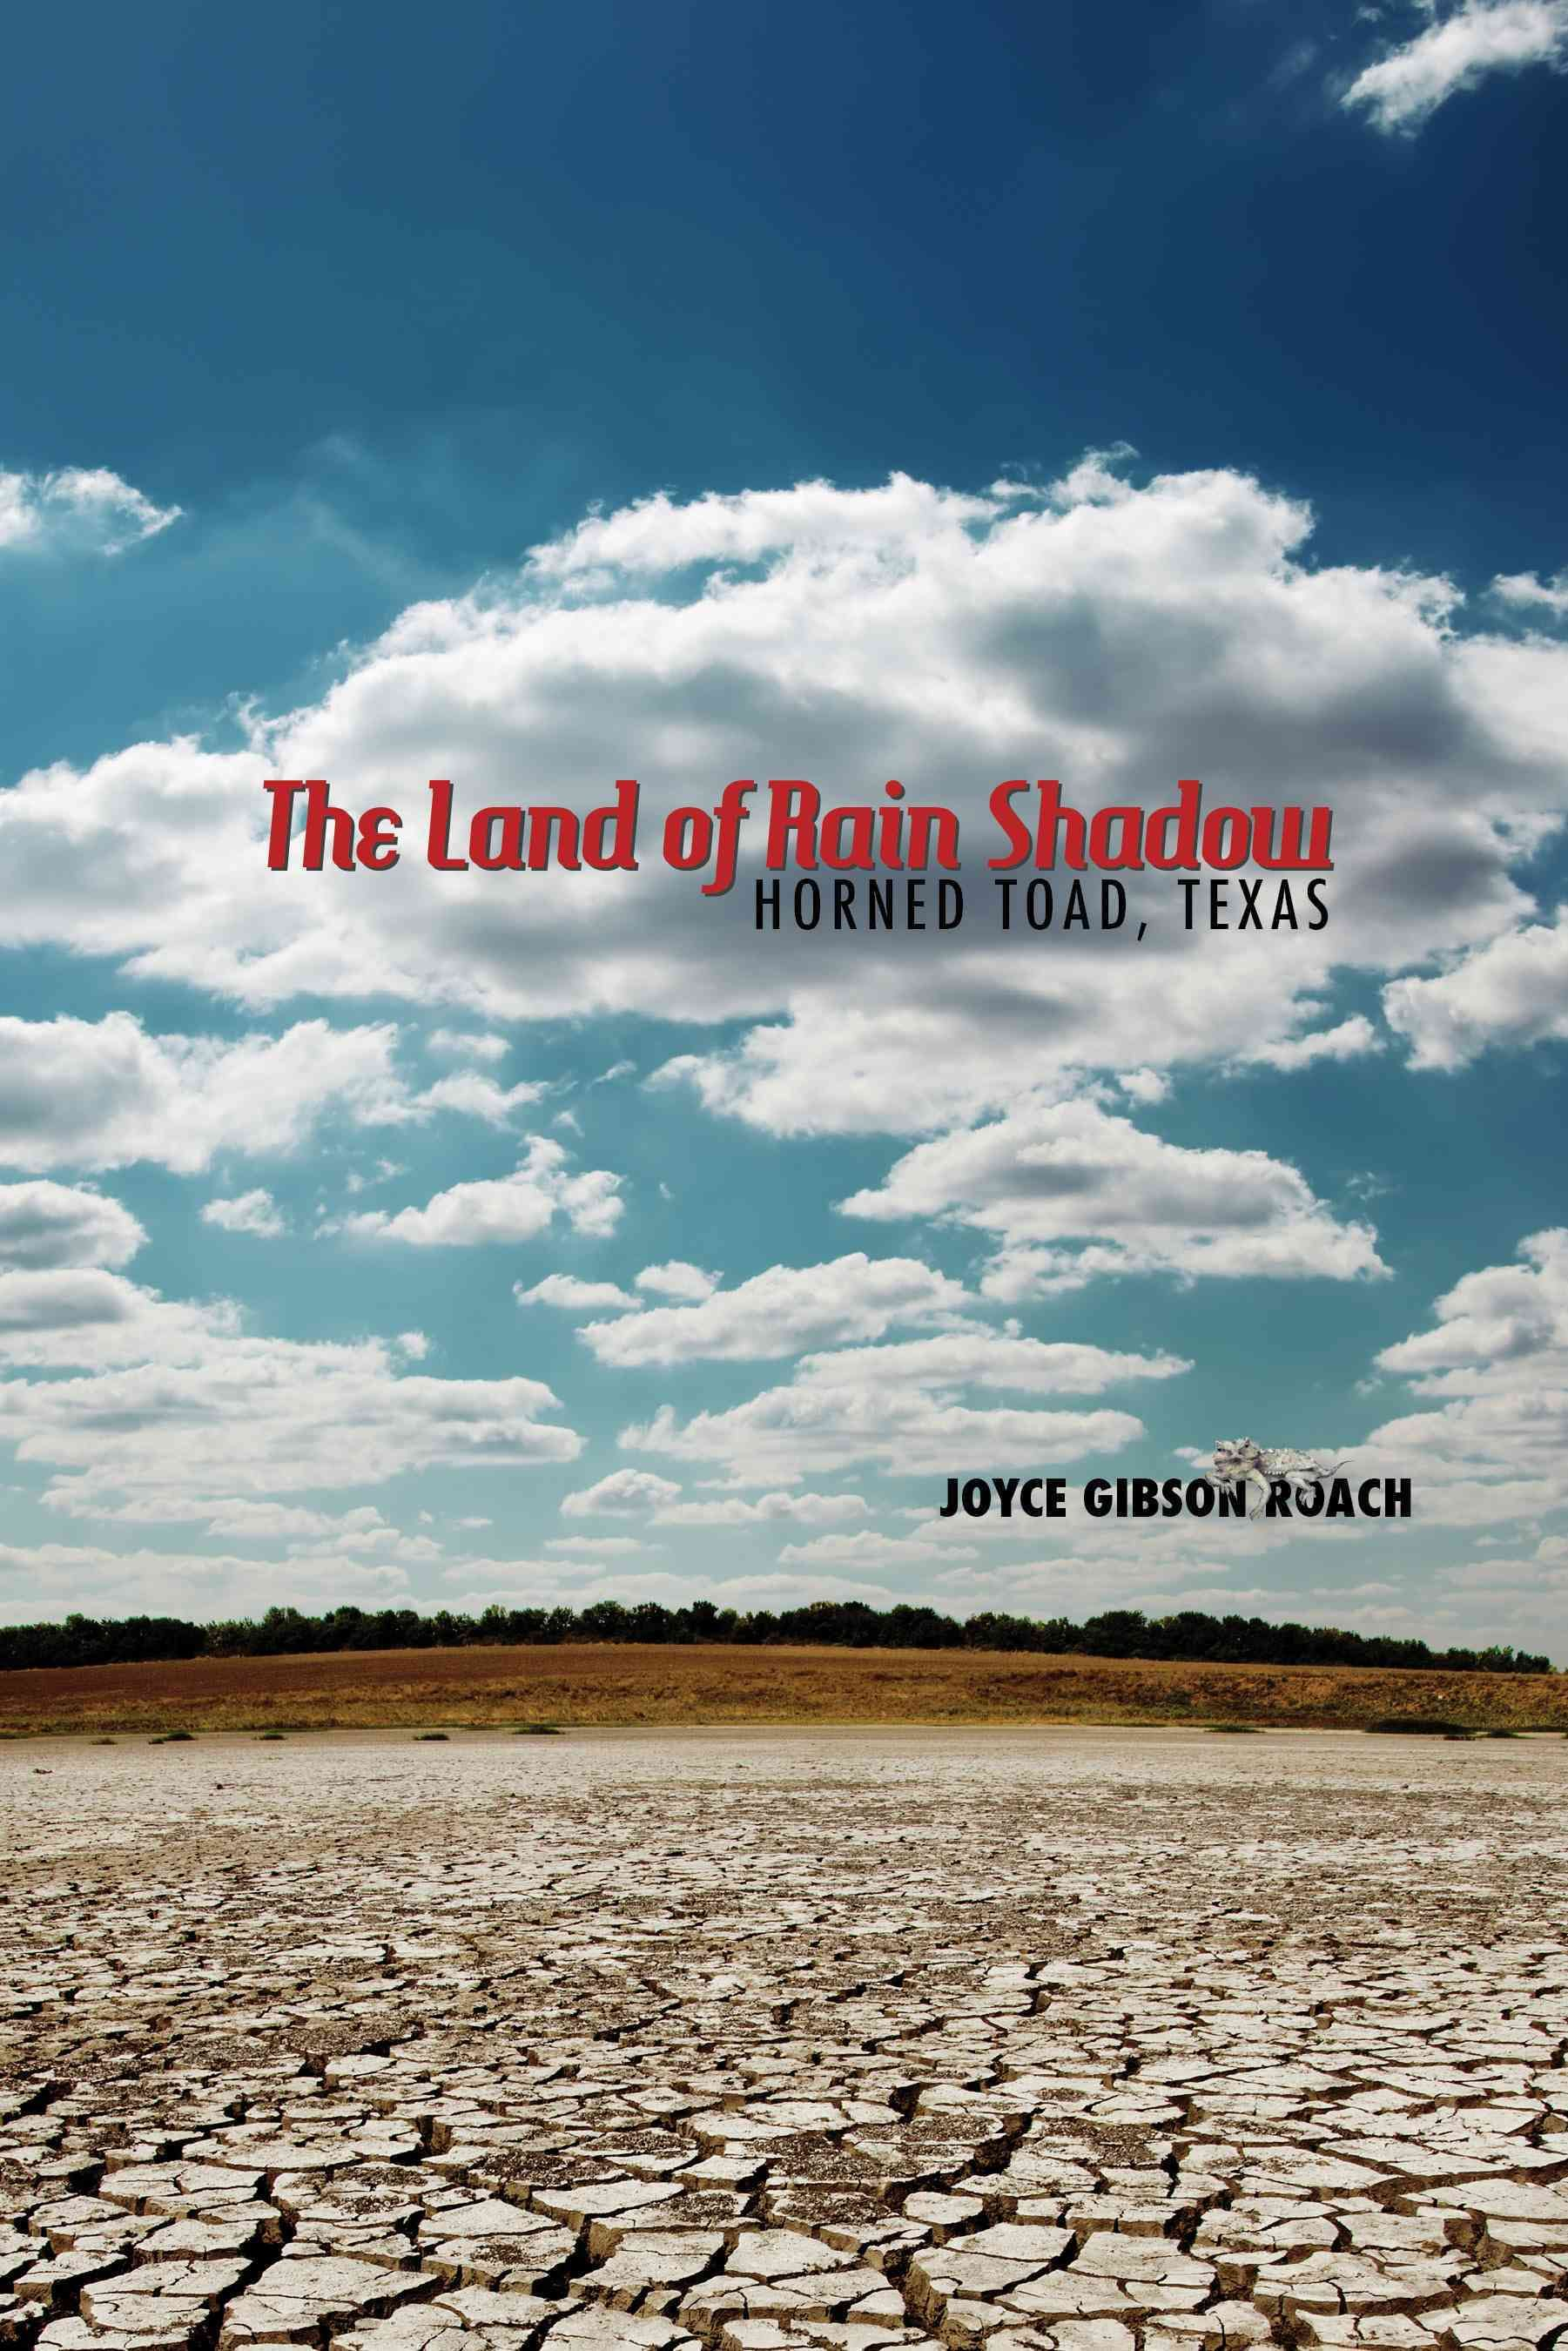 The Land of Rain Shadow: Horned Toad, Texas